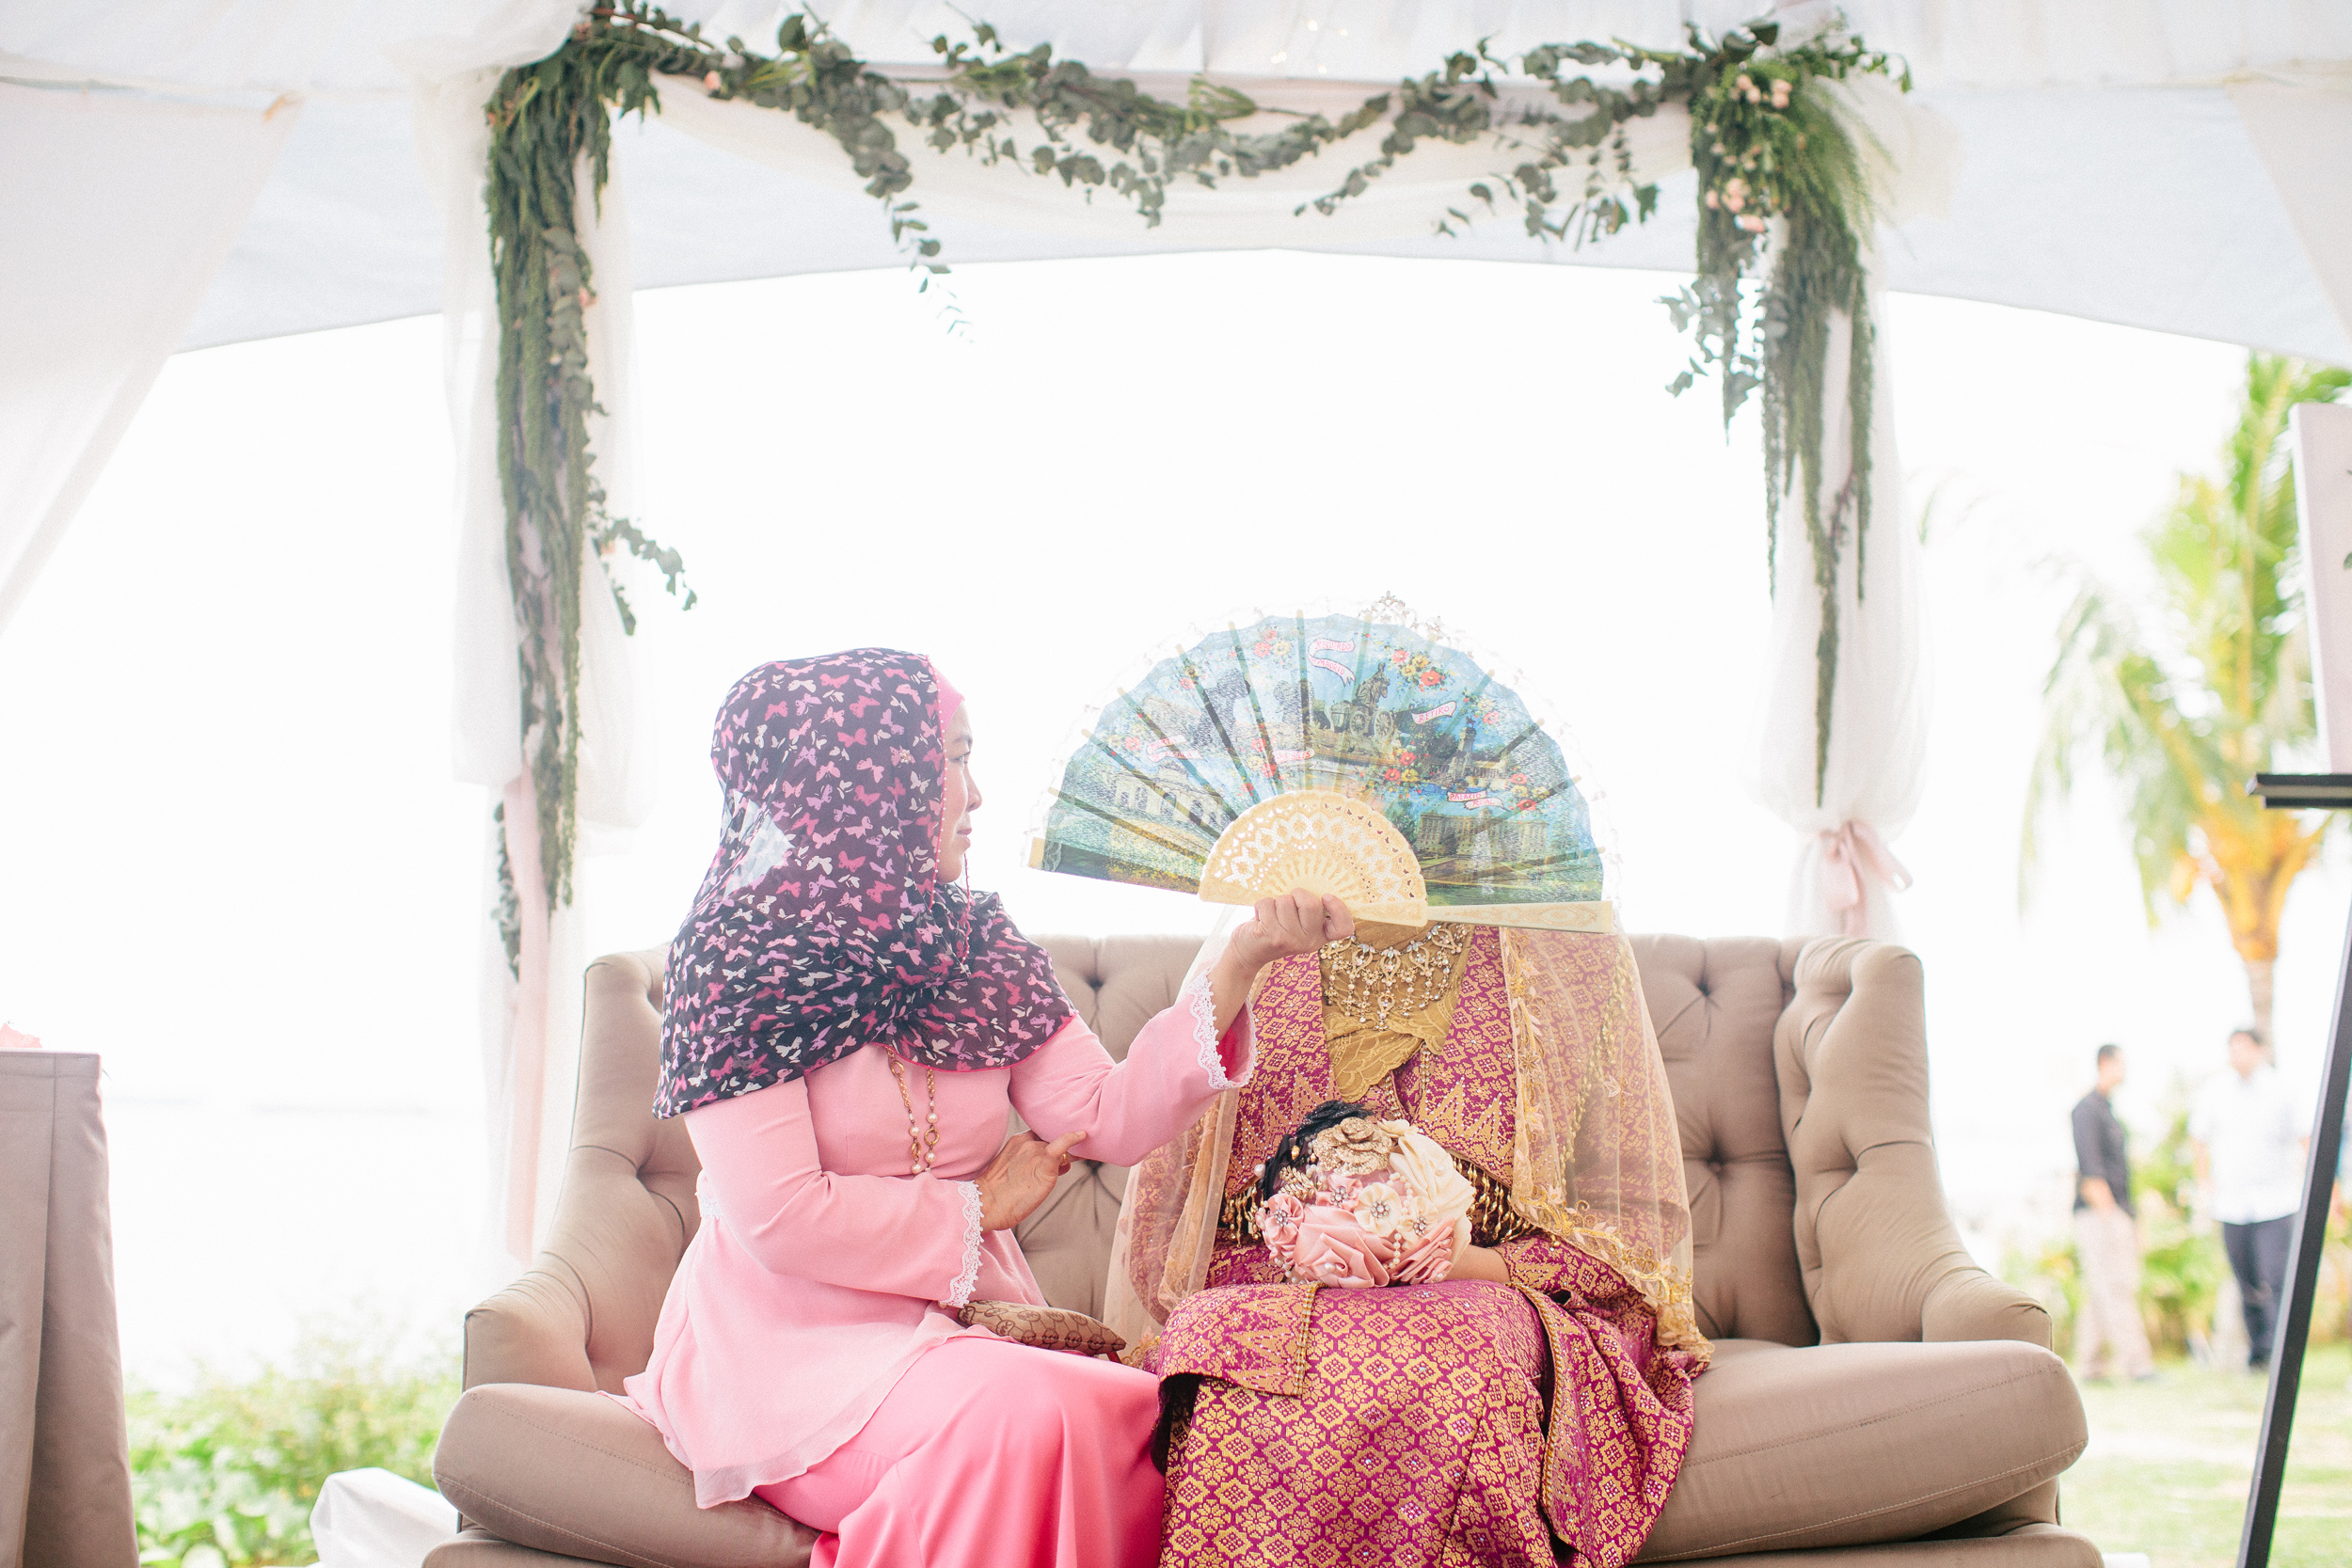 singapore-wedding-photographer-wemadethese-aisyah-helmi-42.jpg